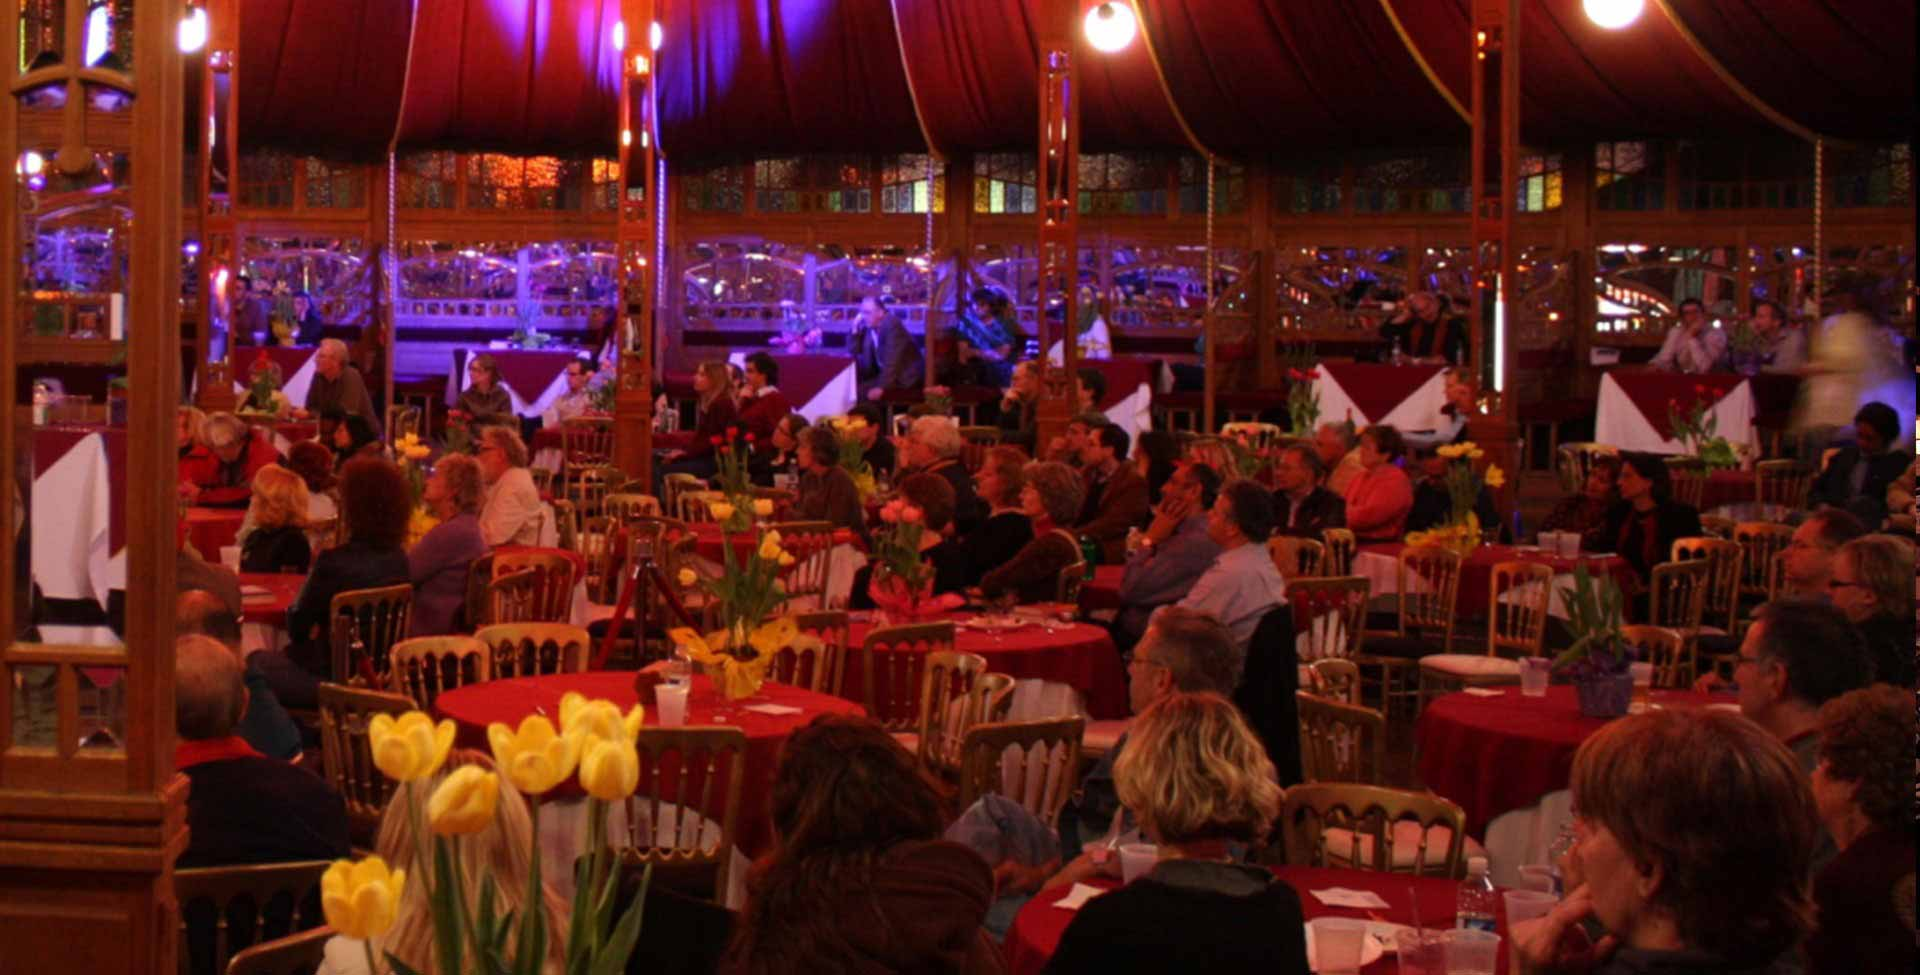 Attendance spiegeltent Magic Mirror